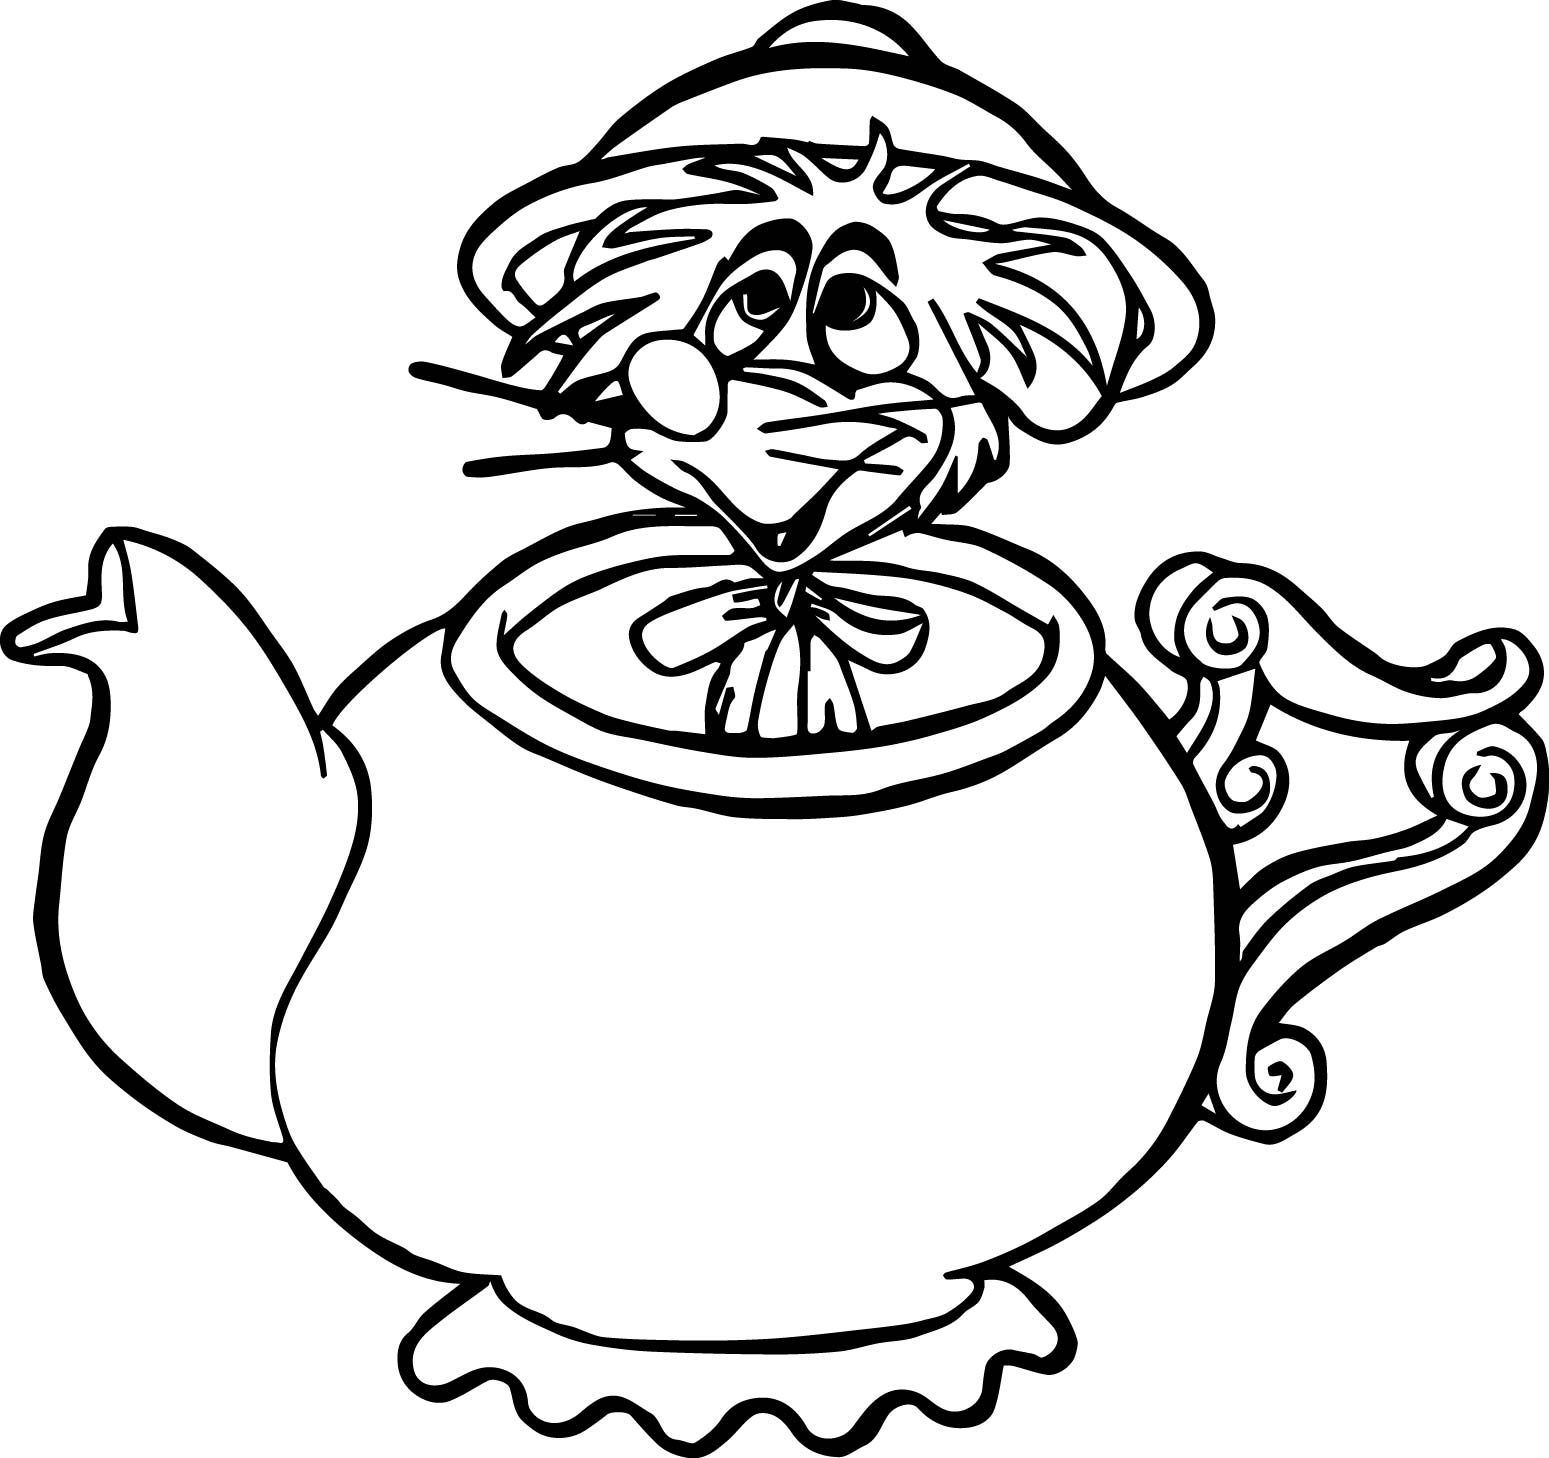 Alice In The Wonderland Mouse Coloring Pages  Wecoloringpage.com